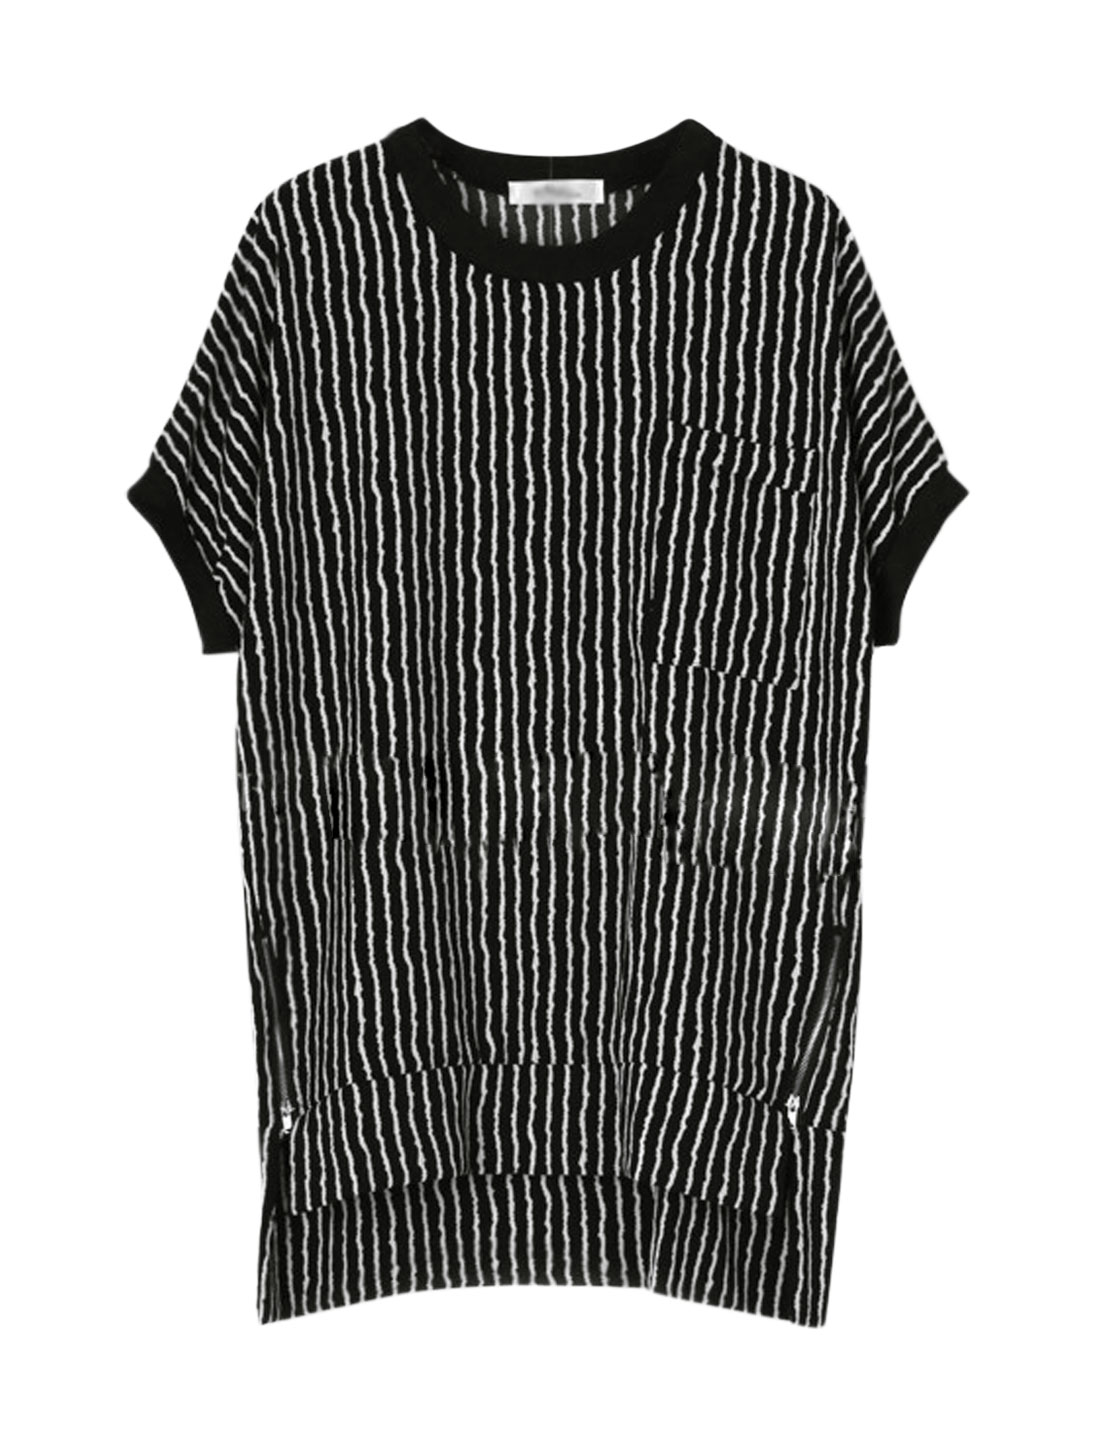 Woman Vertical Stripes Zip Embellished High Low Hem Tunic Top Black M